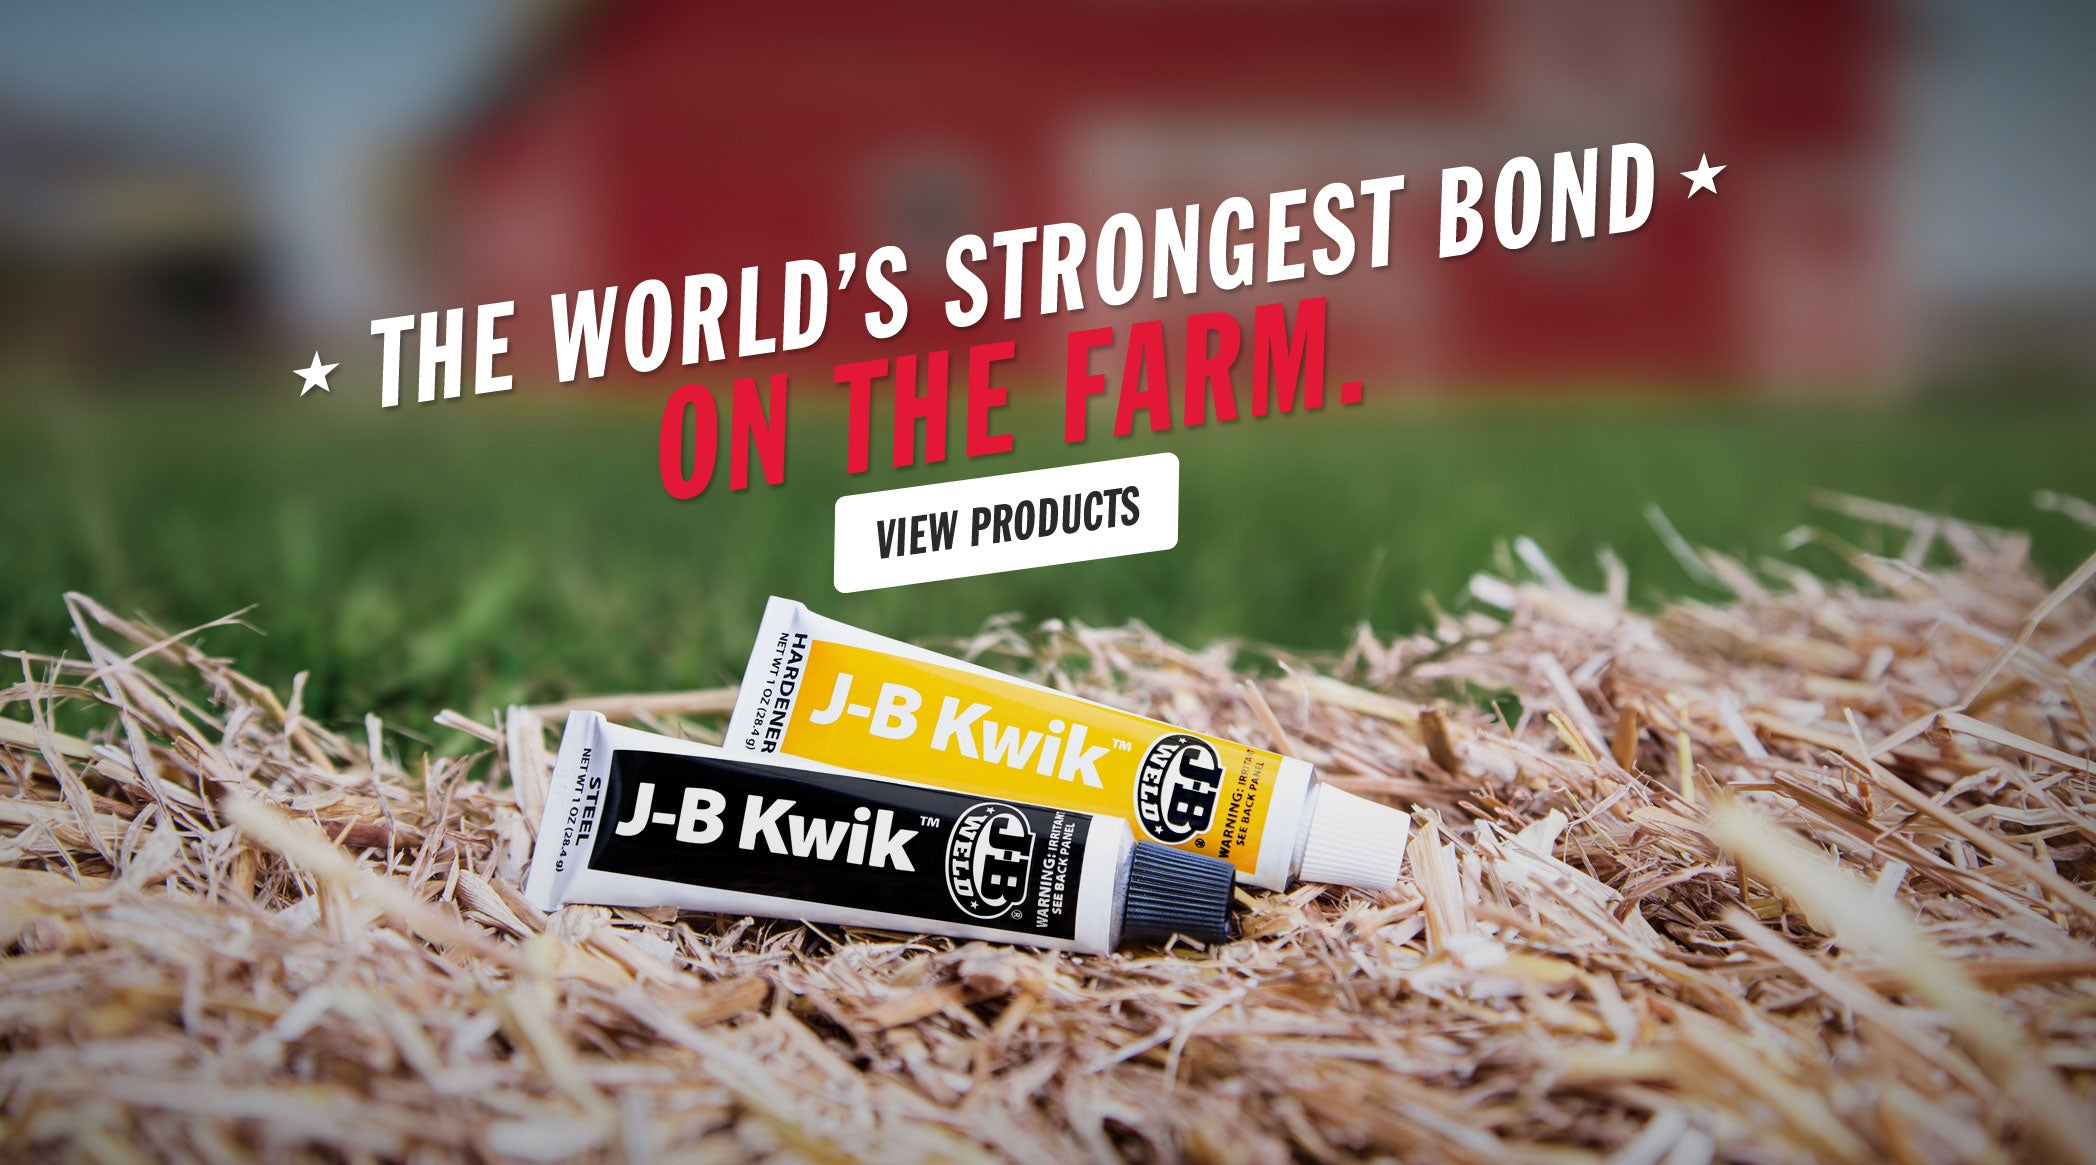 The World's Strongest Bond On the Farm